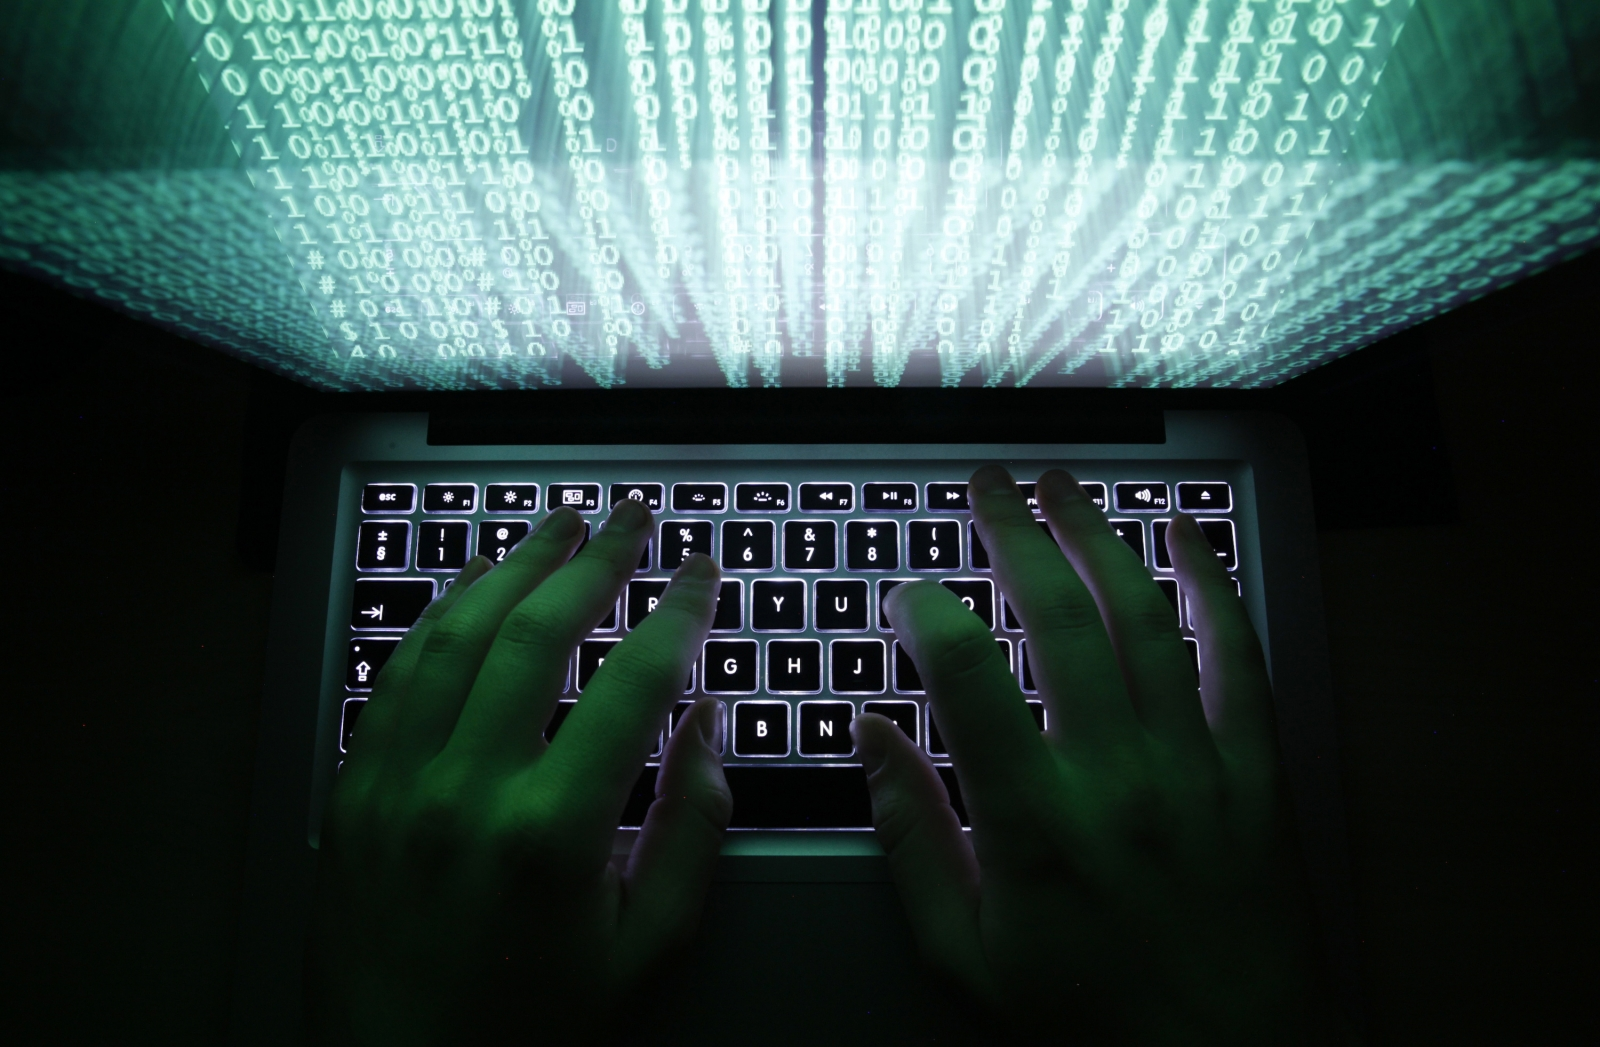 Russian cyber experts' treason charges linked to 7 year old allegations of data sharing with US